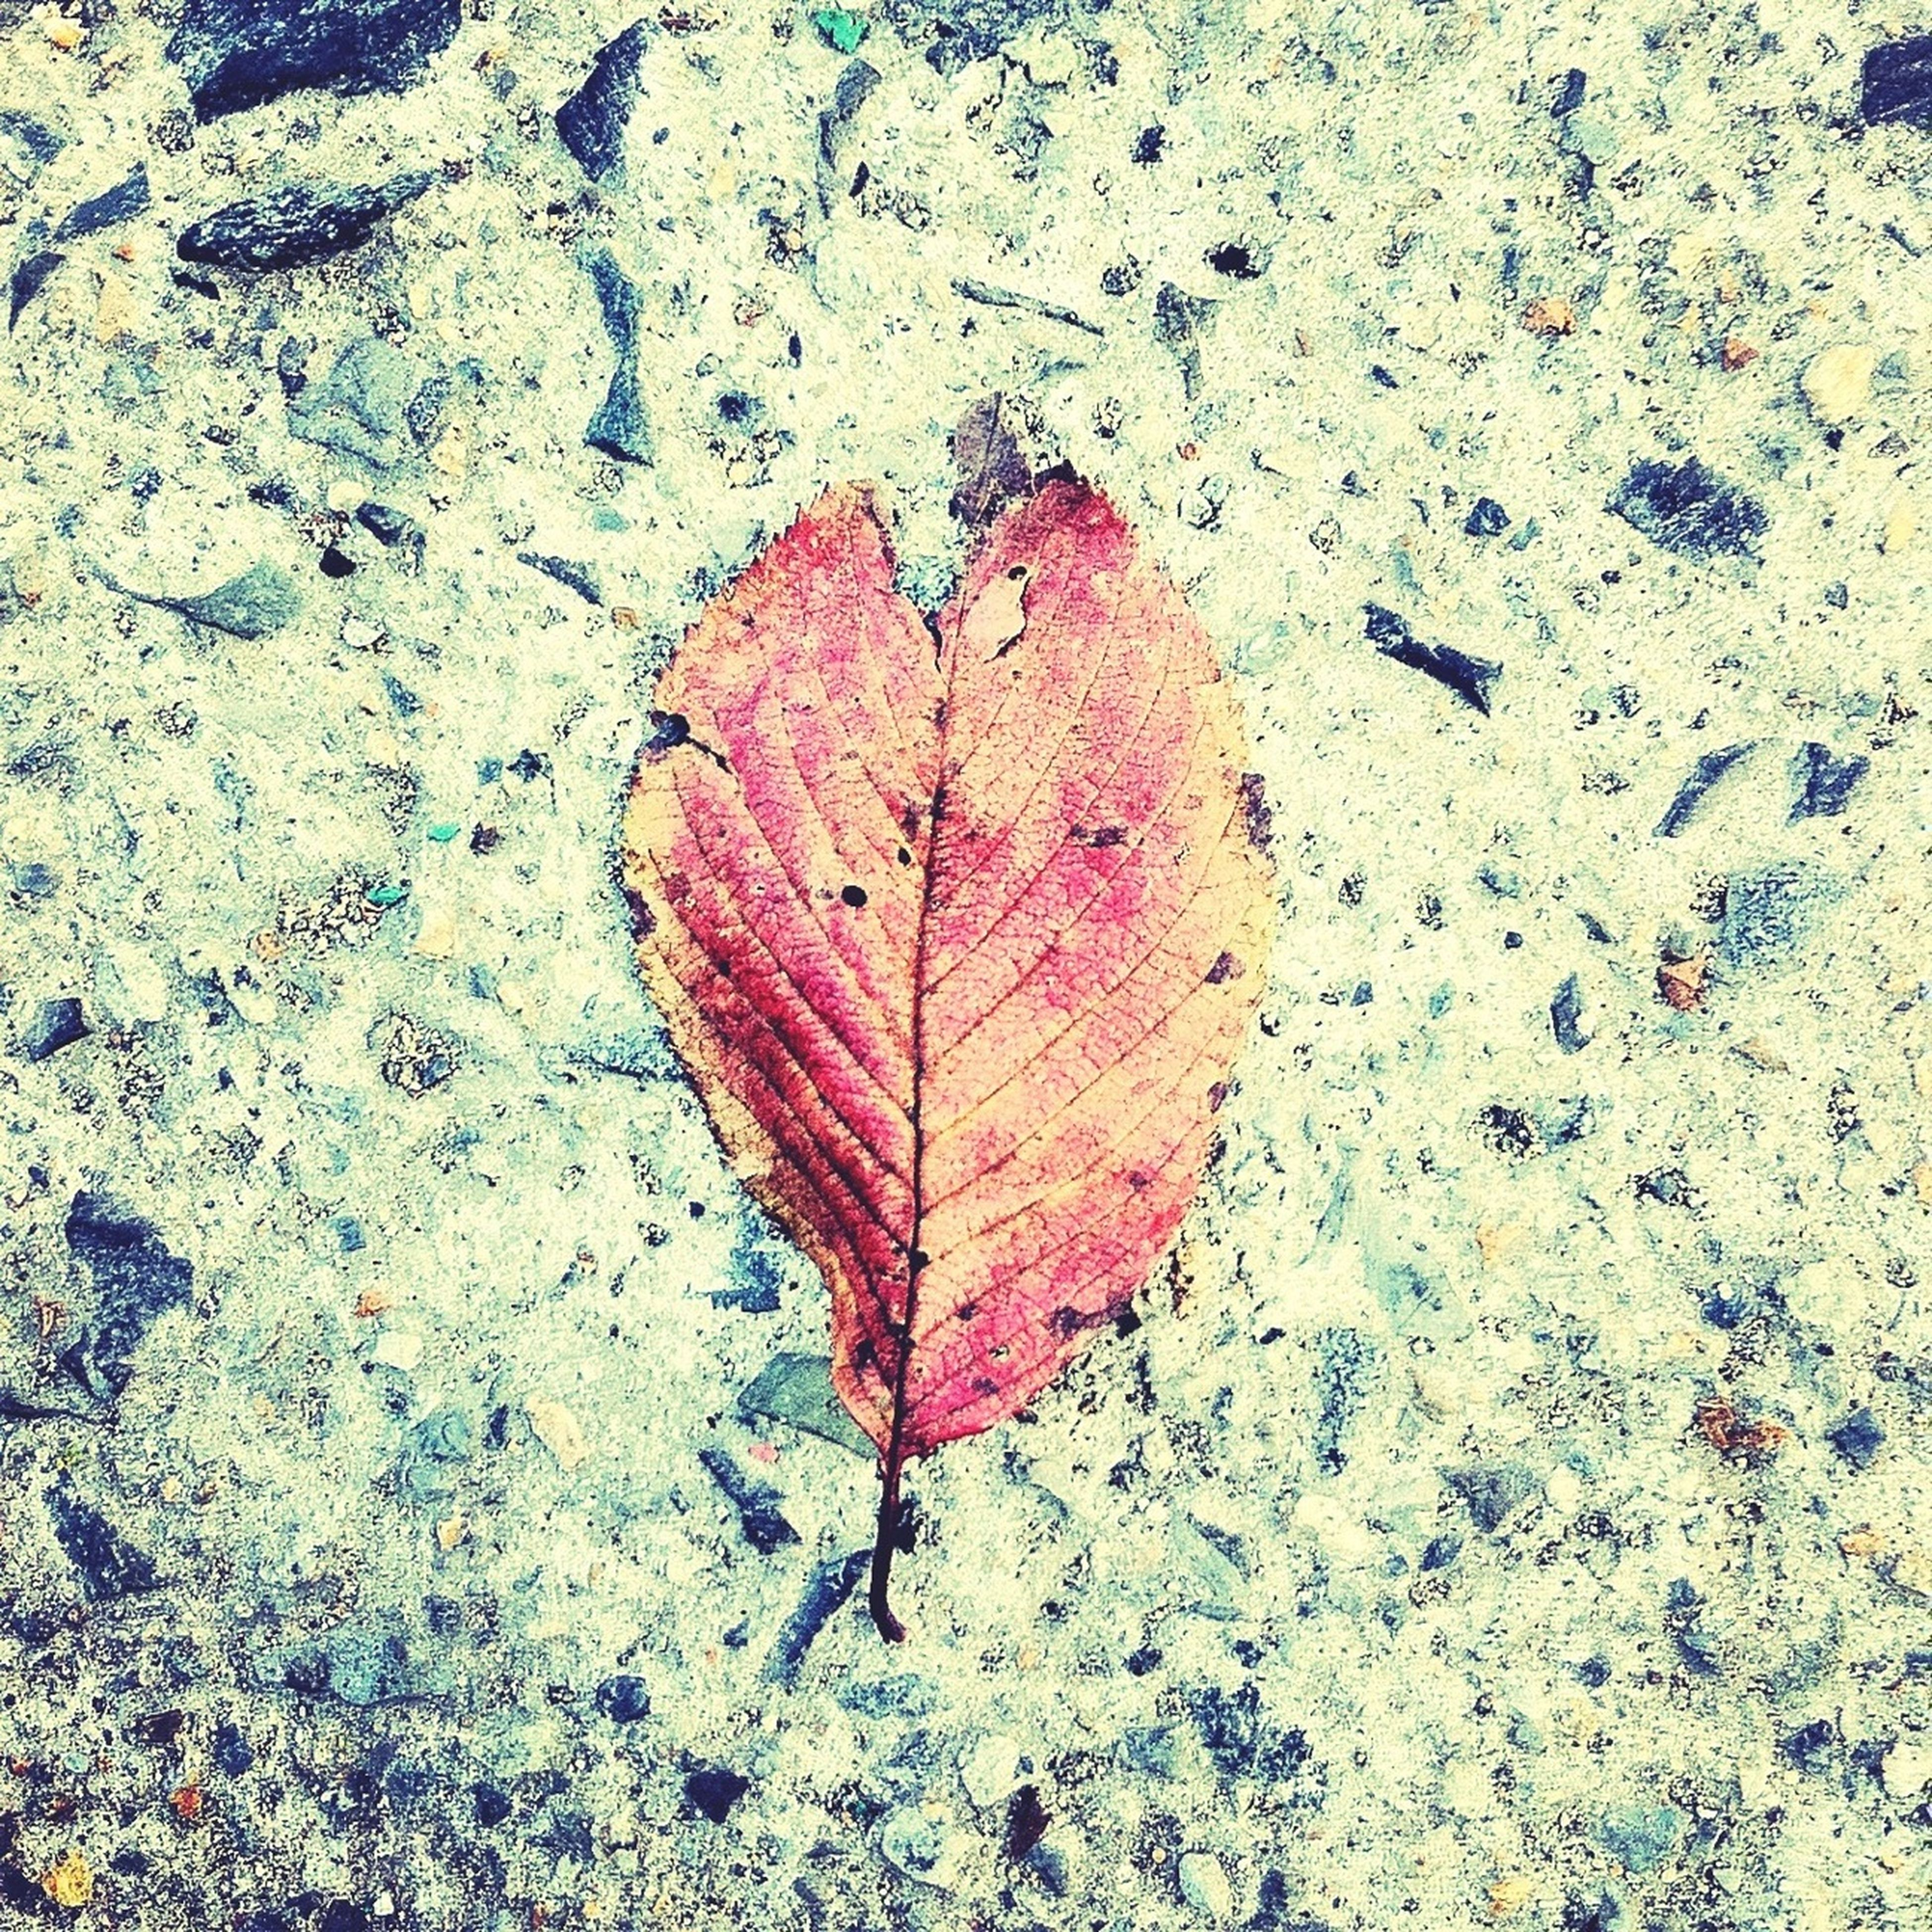 leaf, autumn, change, season, dry, leaf vein, close-up, high angle view, fallen, maple leaf, wet, nature, leaves, textured, asphalt, street, natural pattern, day, outdoors, no people